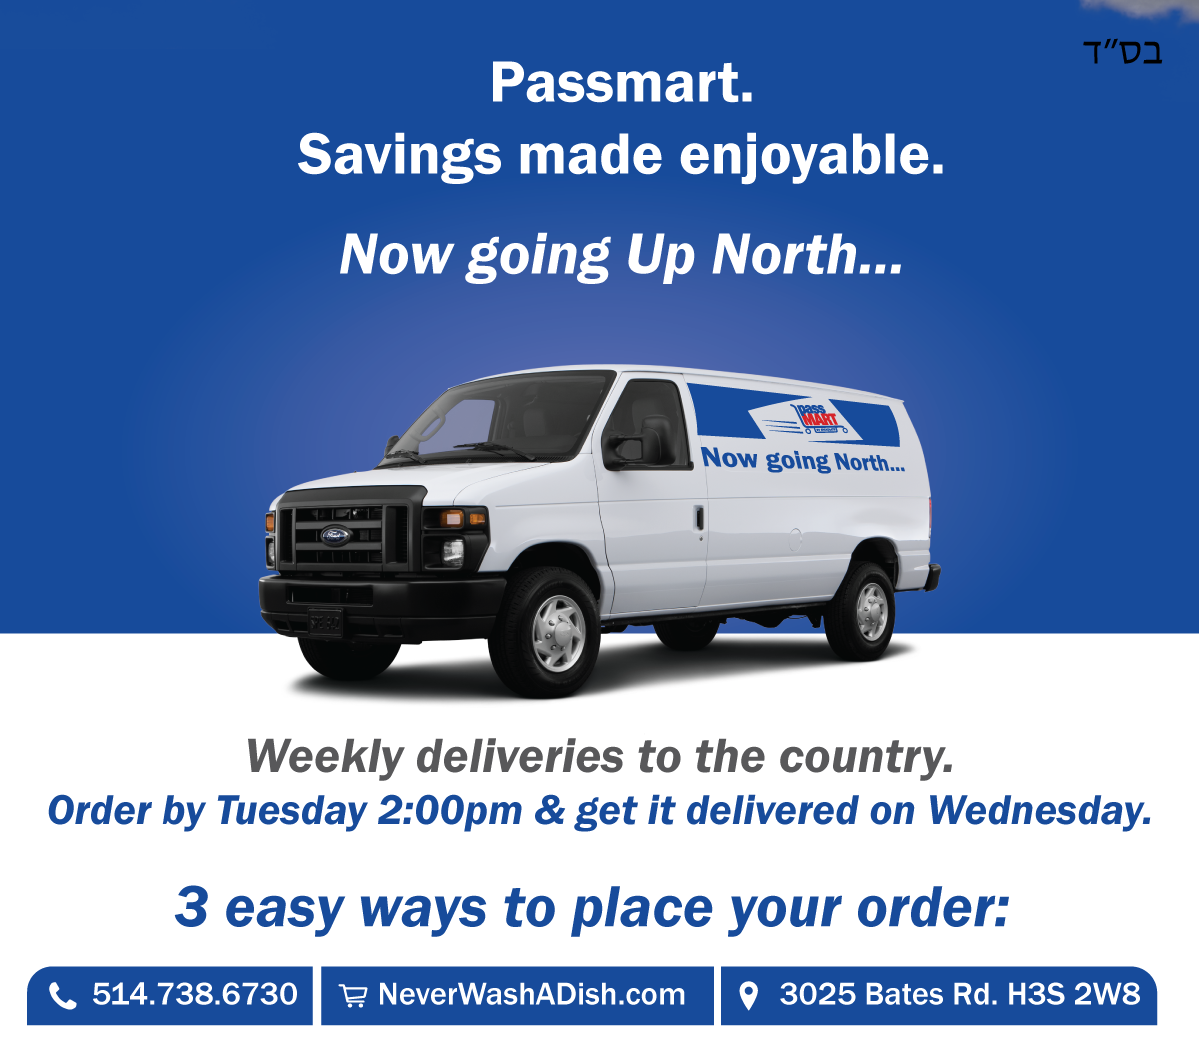 passmartcdelivery.png